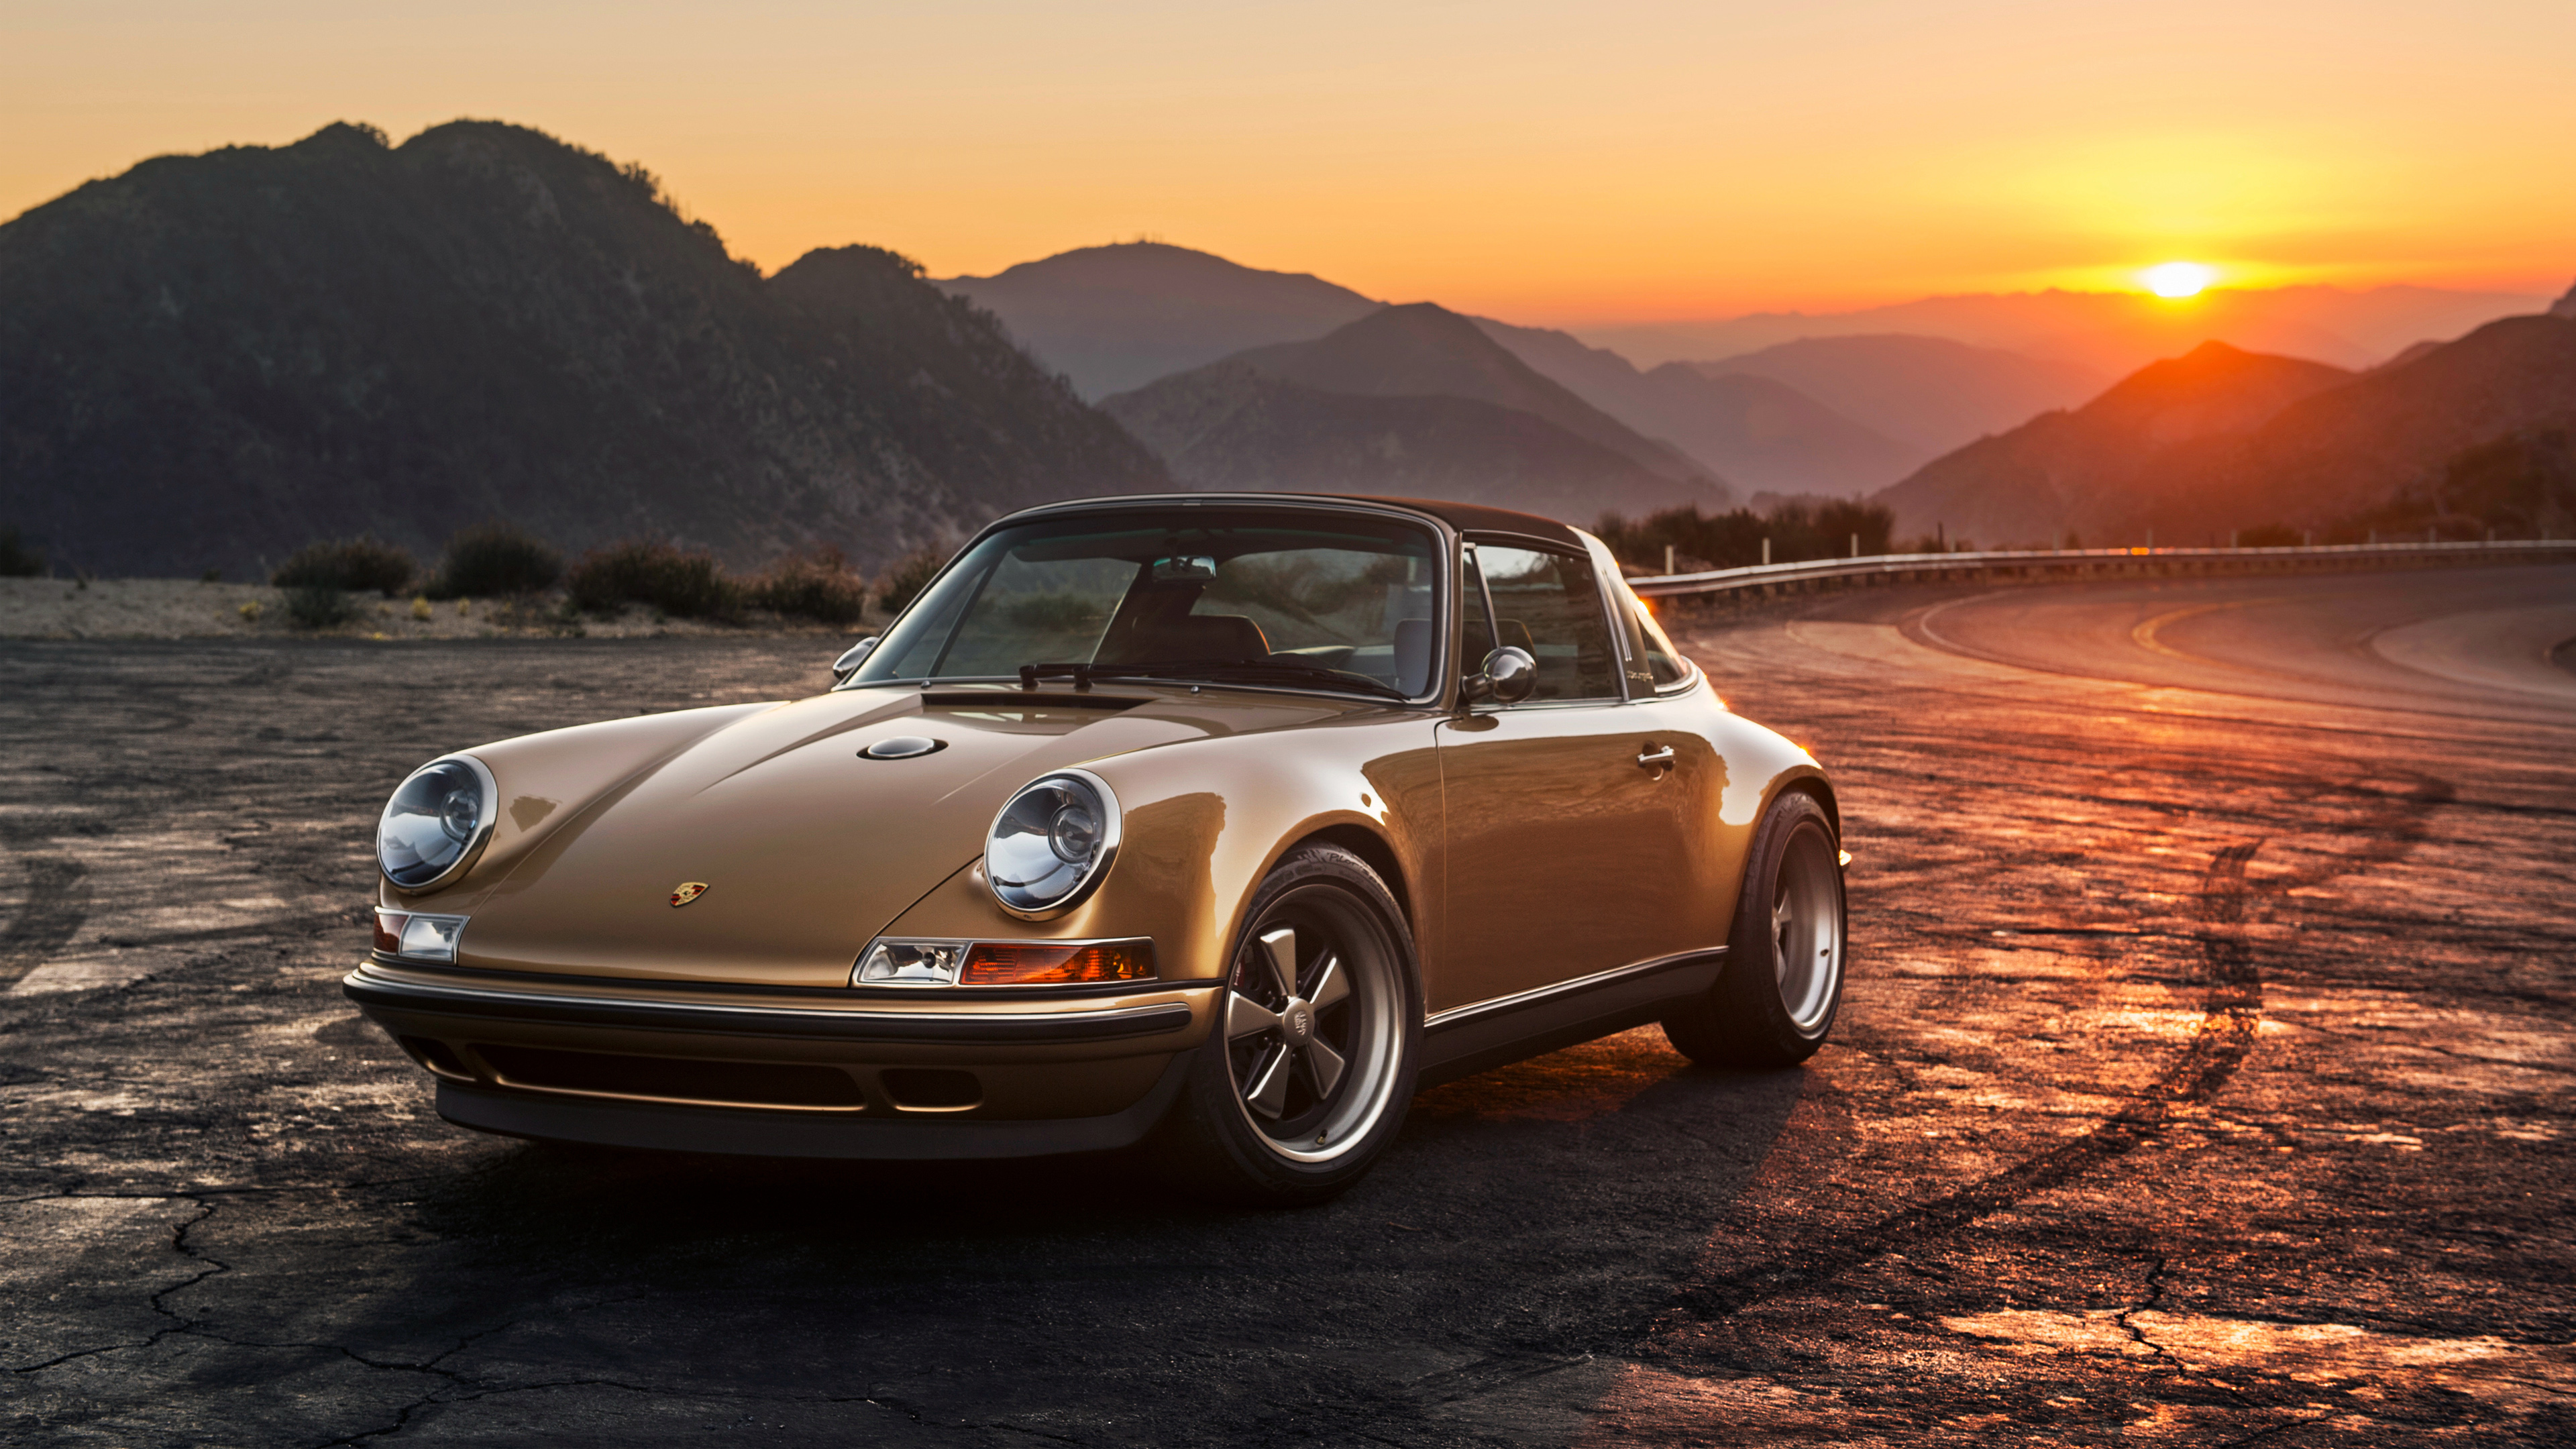 Porsche 911 Hd Wallpapers Wallpapersafari